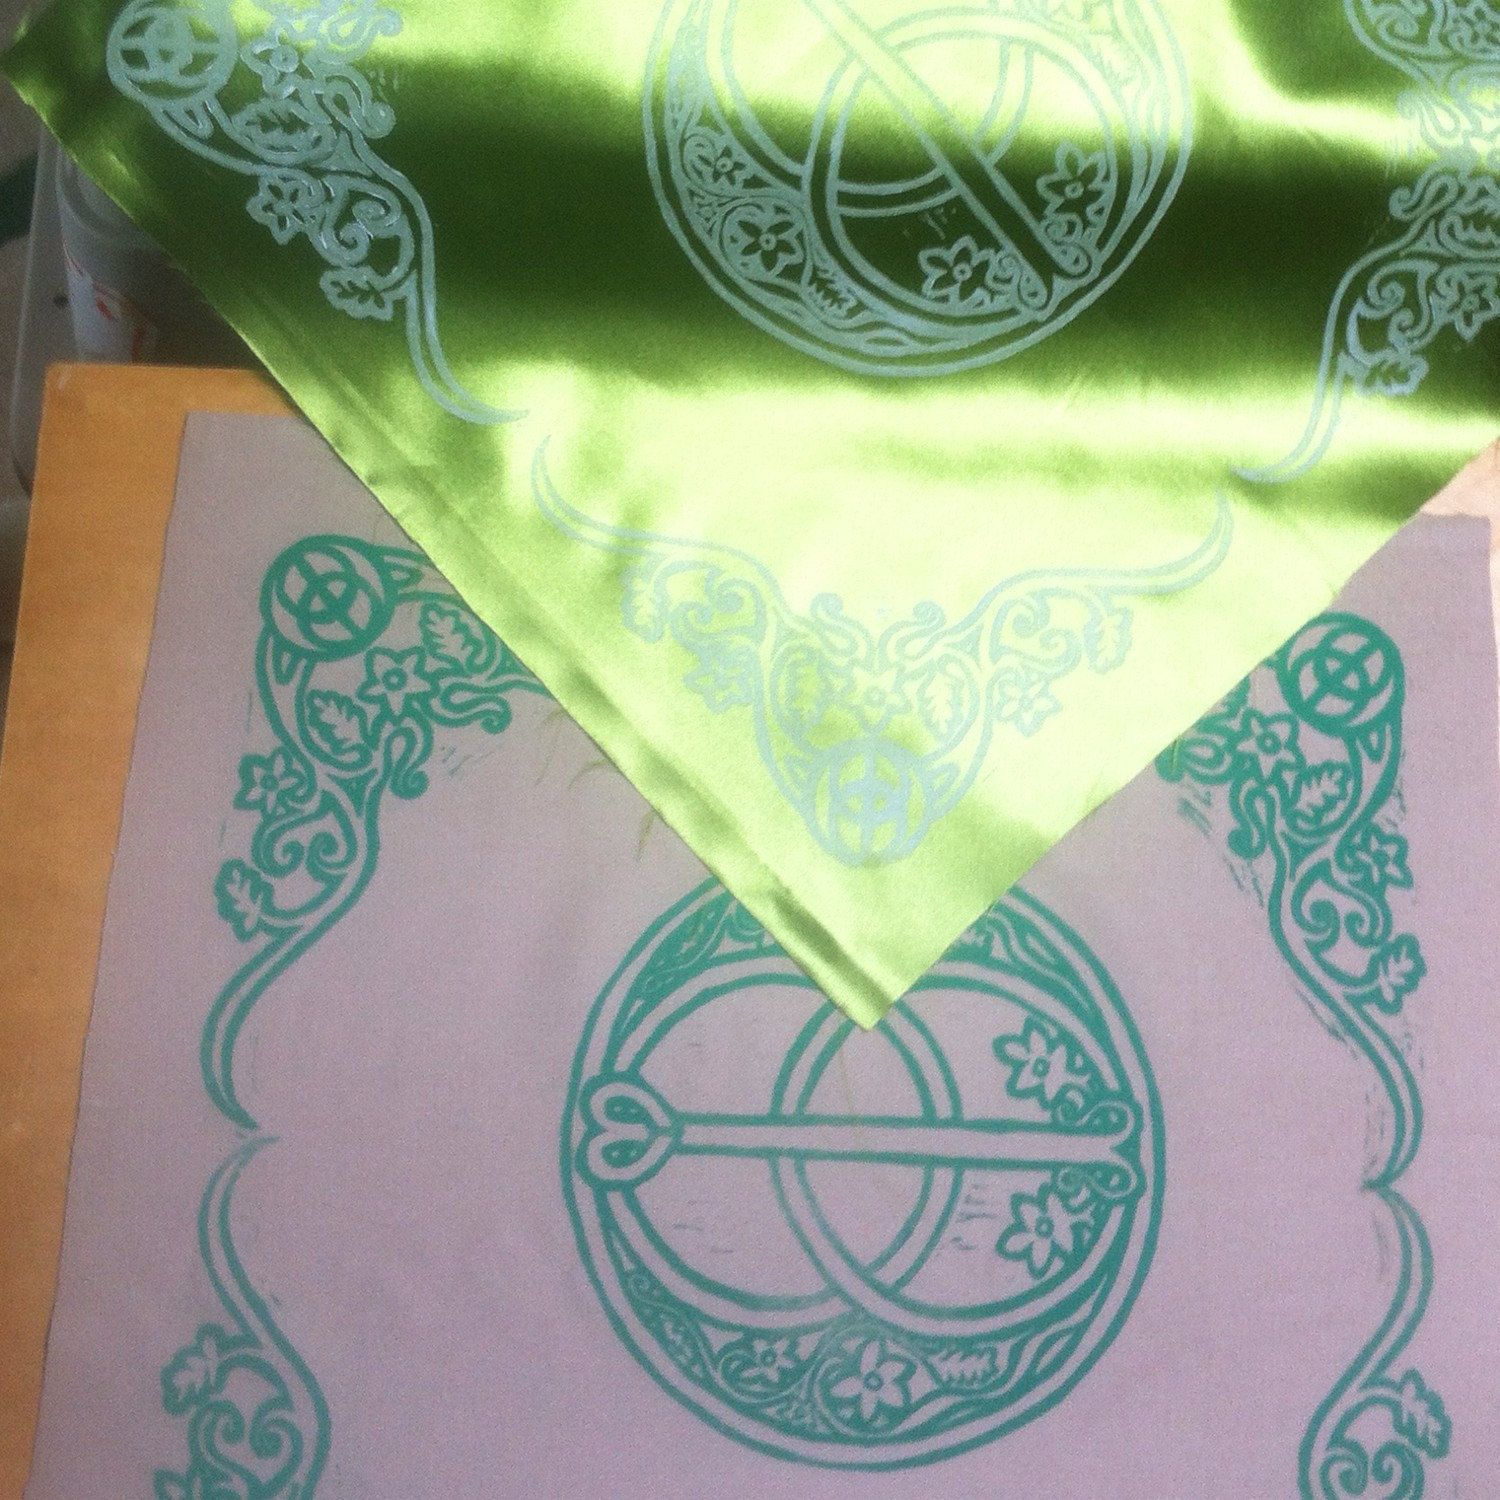 Busy printing new Chalice Well altar cloths